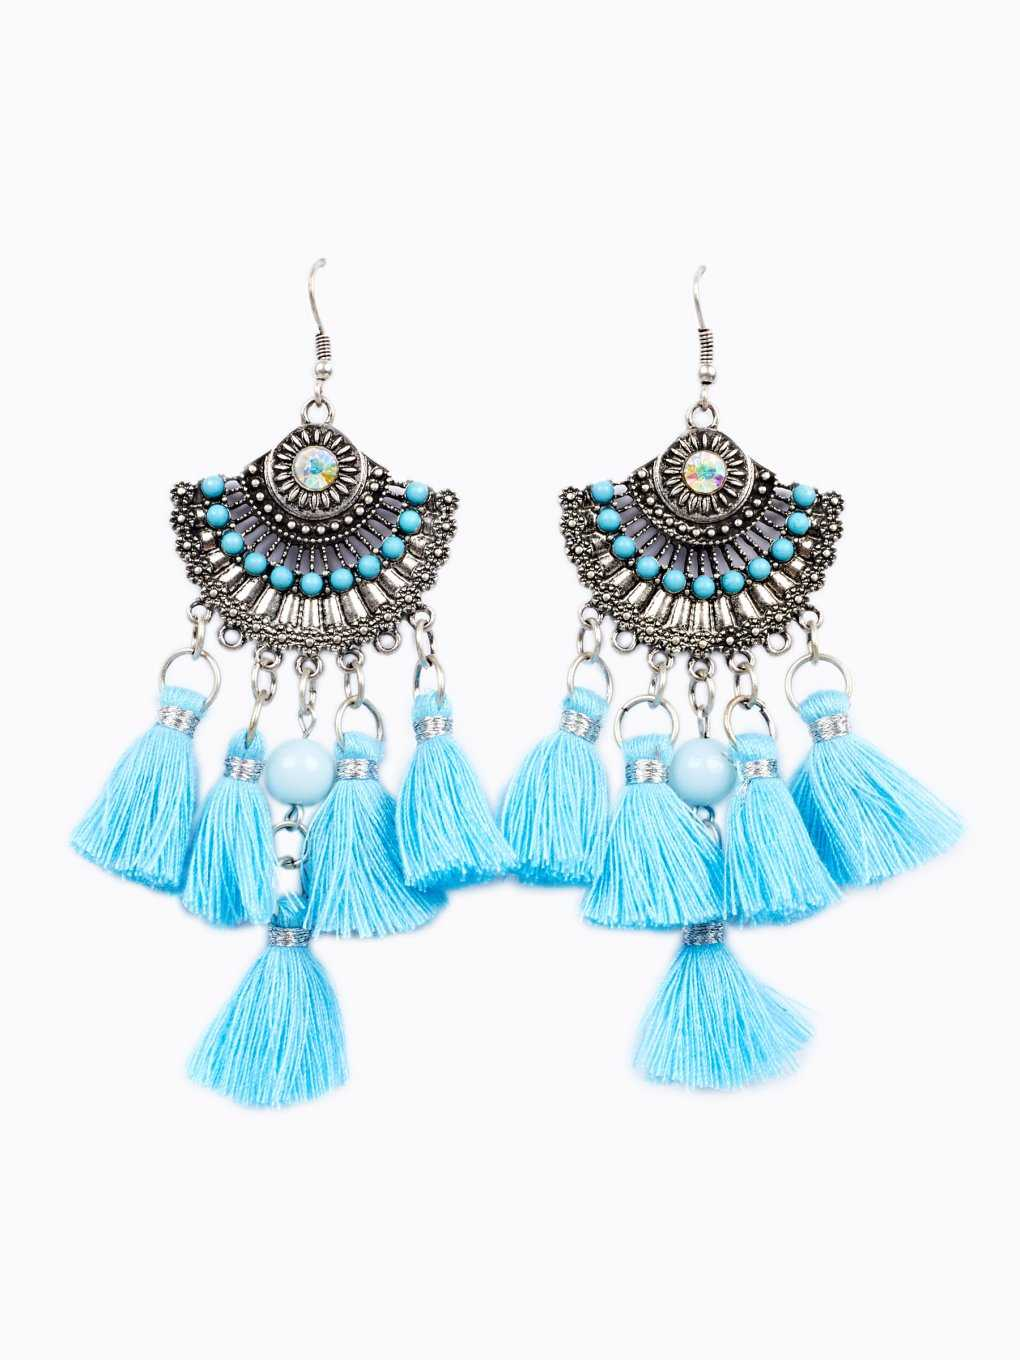 Drop earrings with tassels